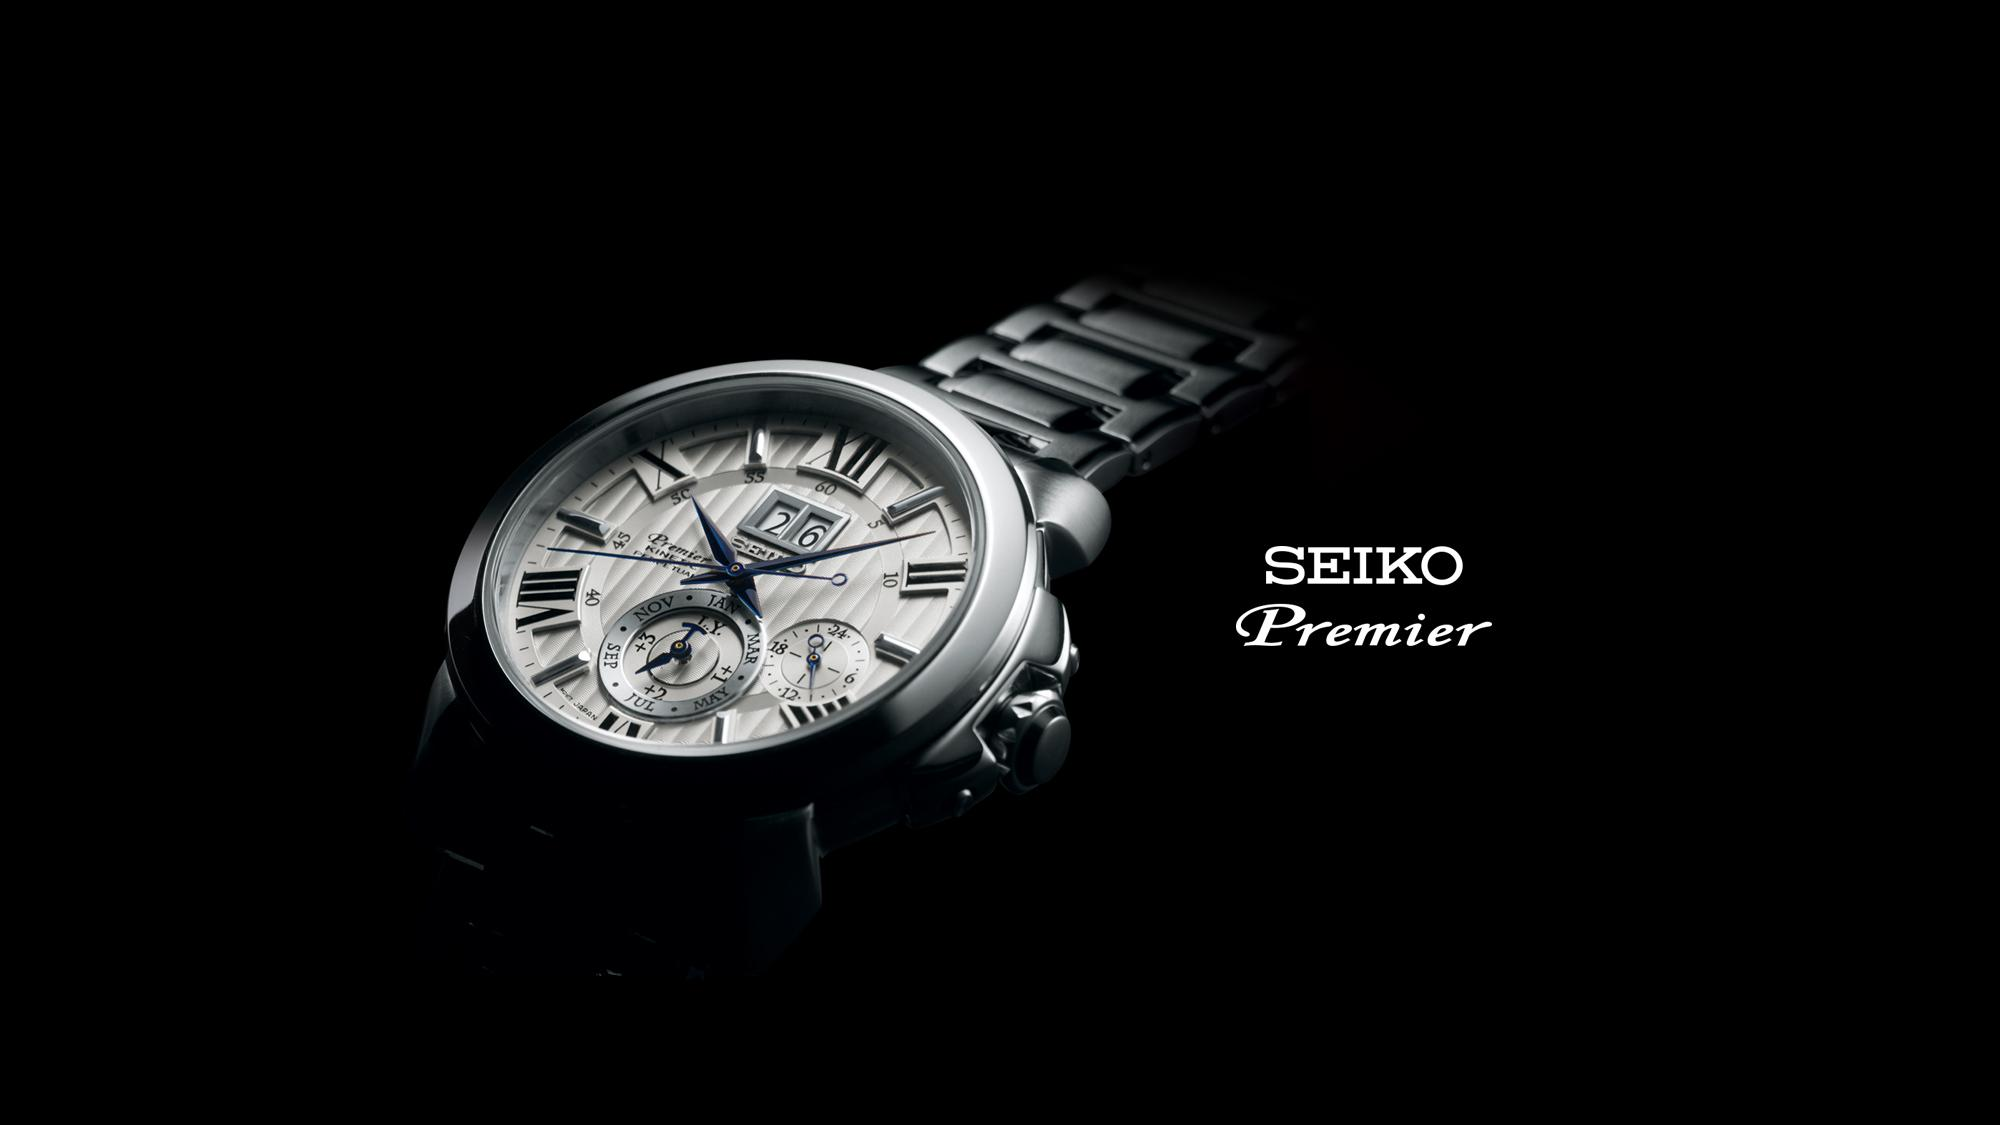 The Premier collection offers refined elegance in dress watches for both  men and women. Classic and modern design themes combine in harmony with  Seiko s ... caa82db0f0